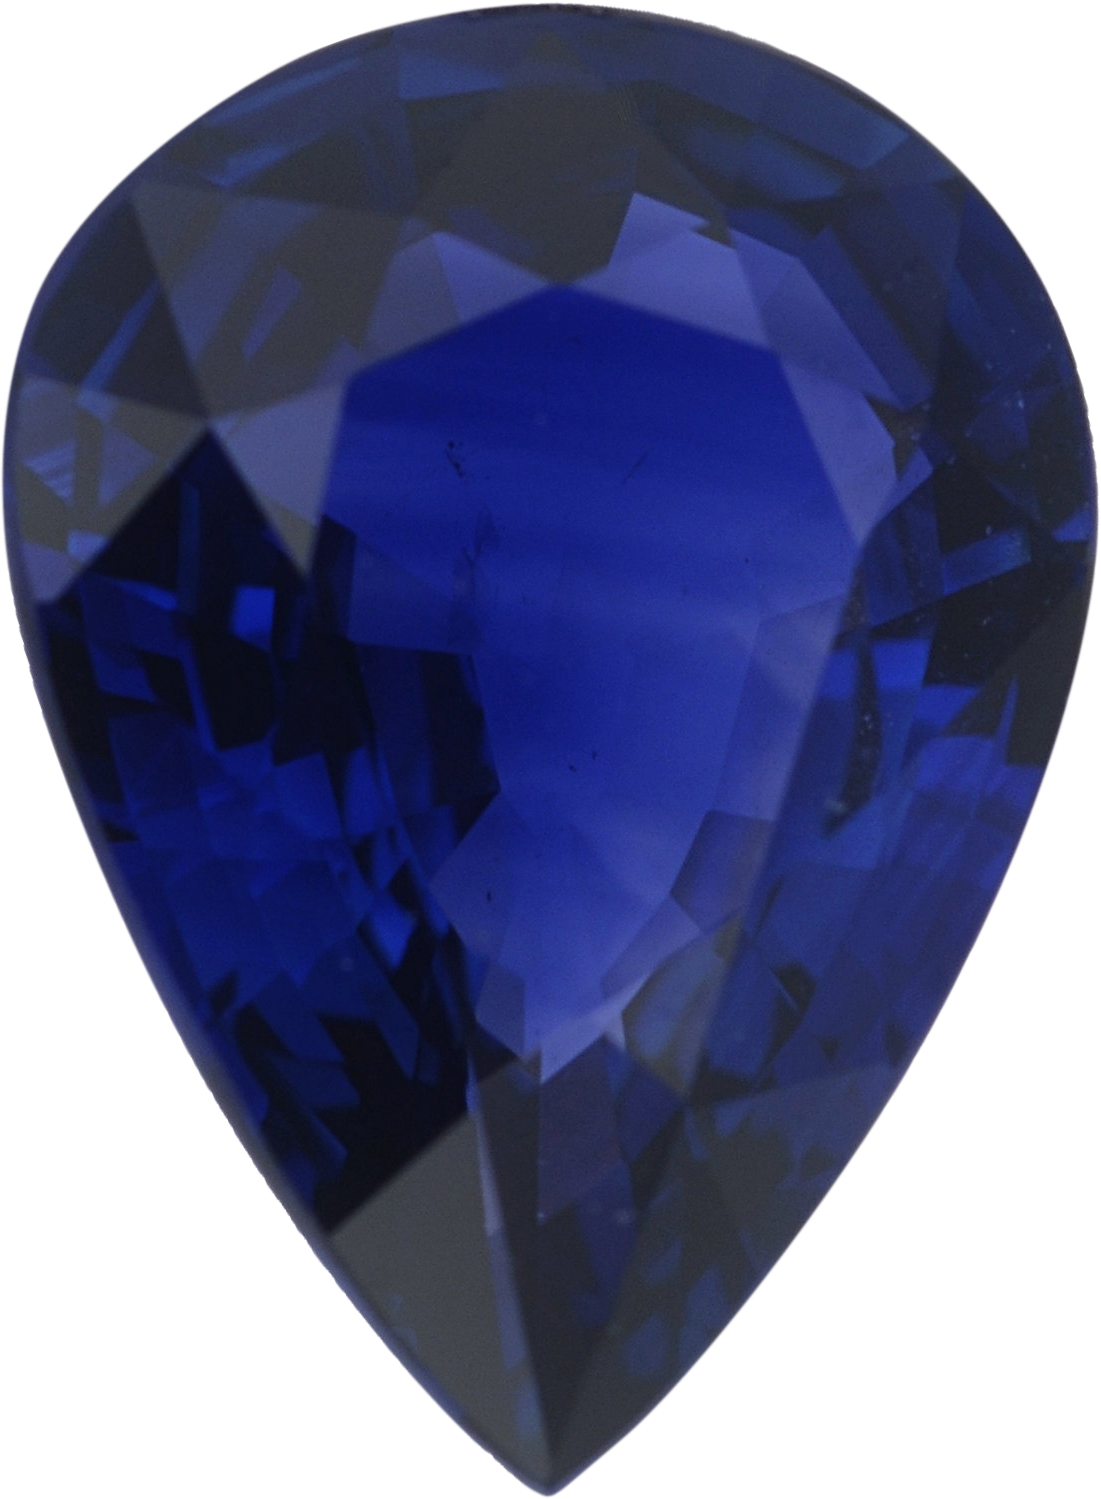 1.06 carats Blue Loose Sapphire Gemstone in Pear Cut, 7.99 x 5.91 mm